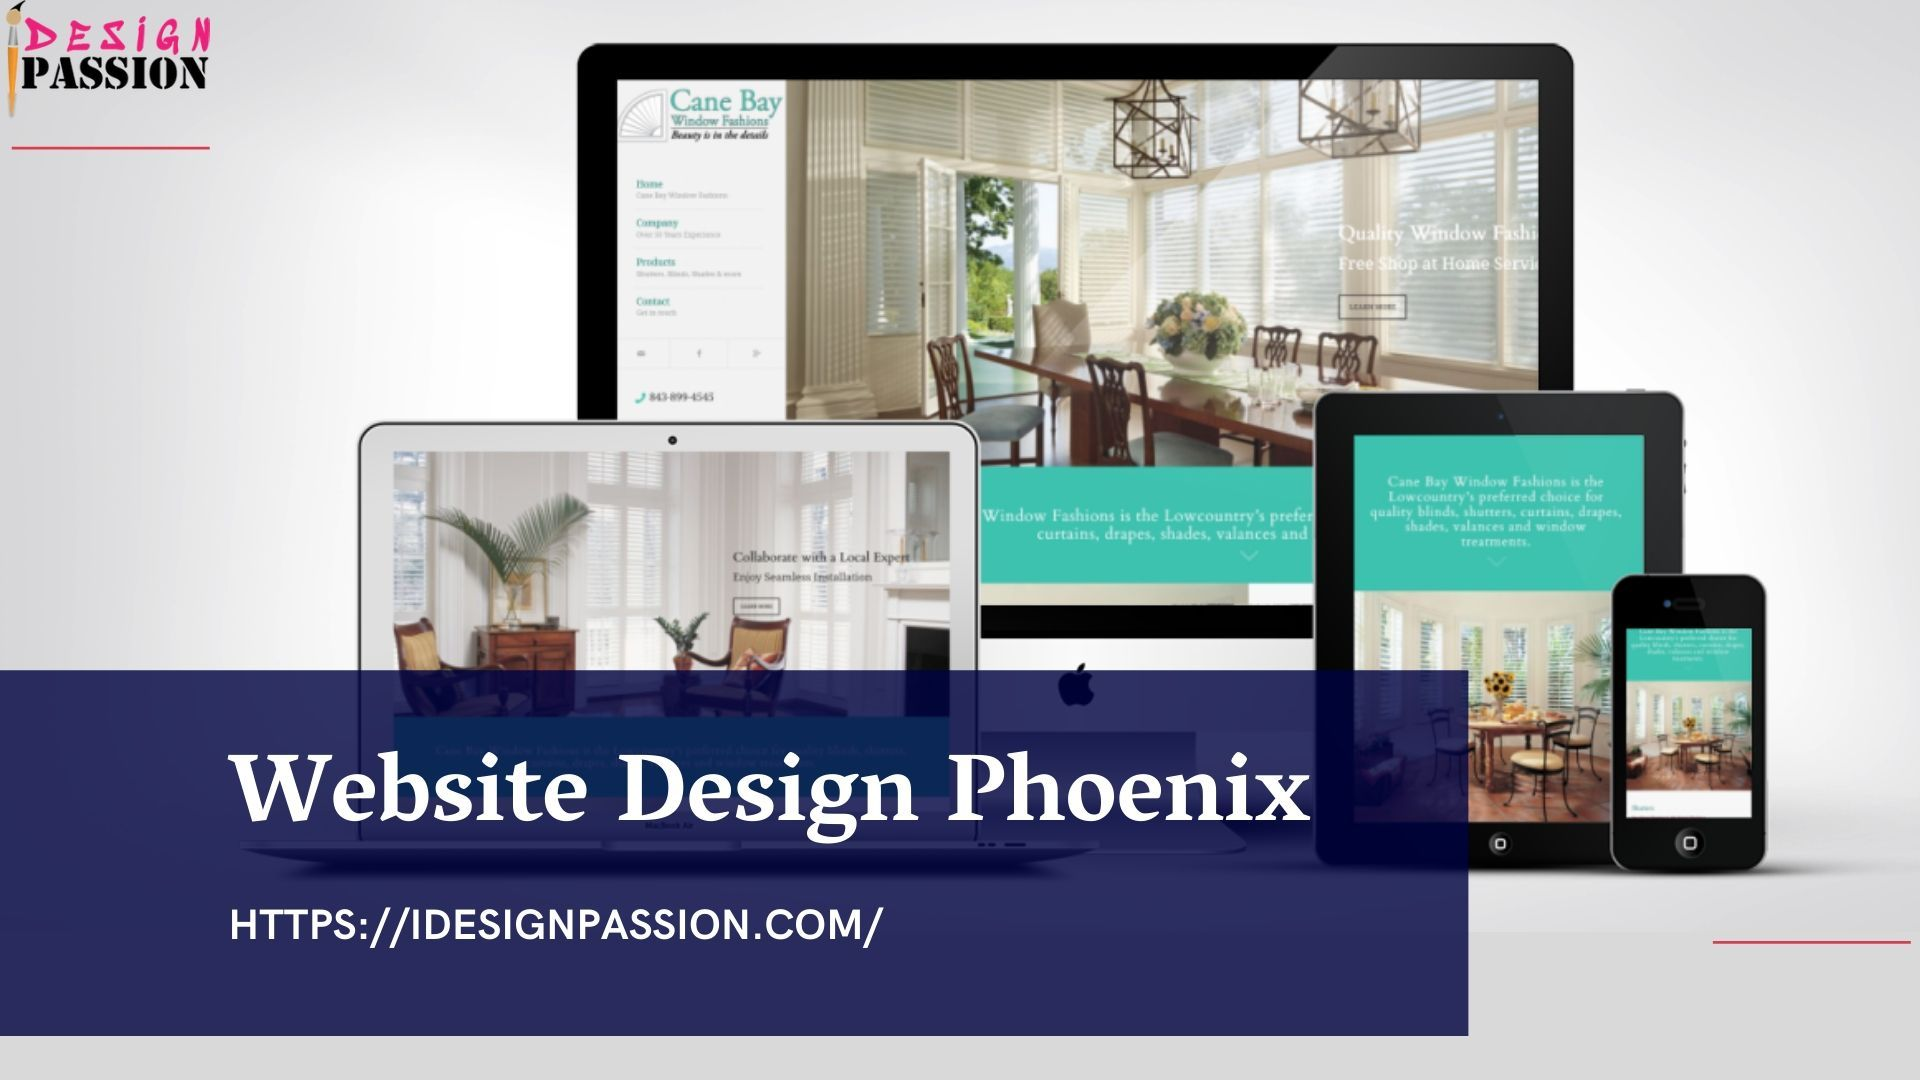 Idesignpassion Provides Website Design Solution In Phoenix So Contact Us For Building Creative Webs Web Design Firm Fun Website Design Creative Website Design